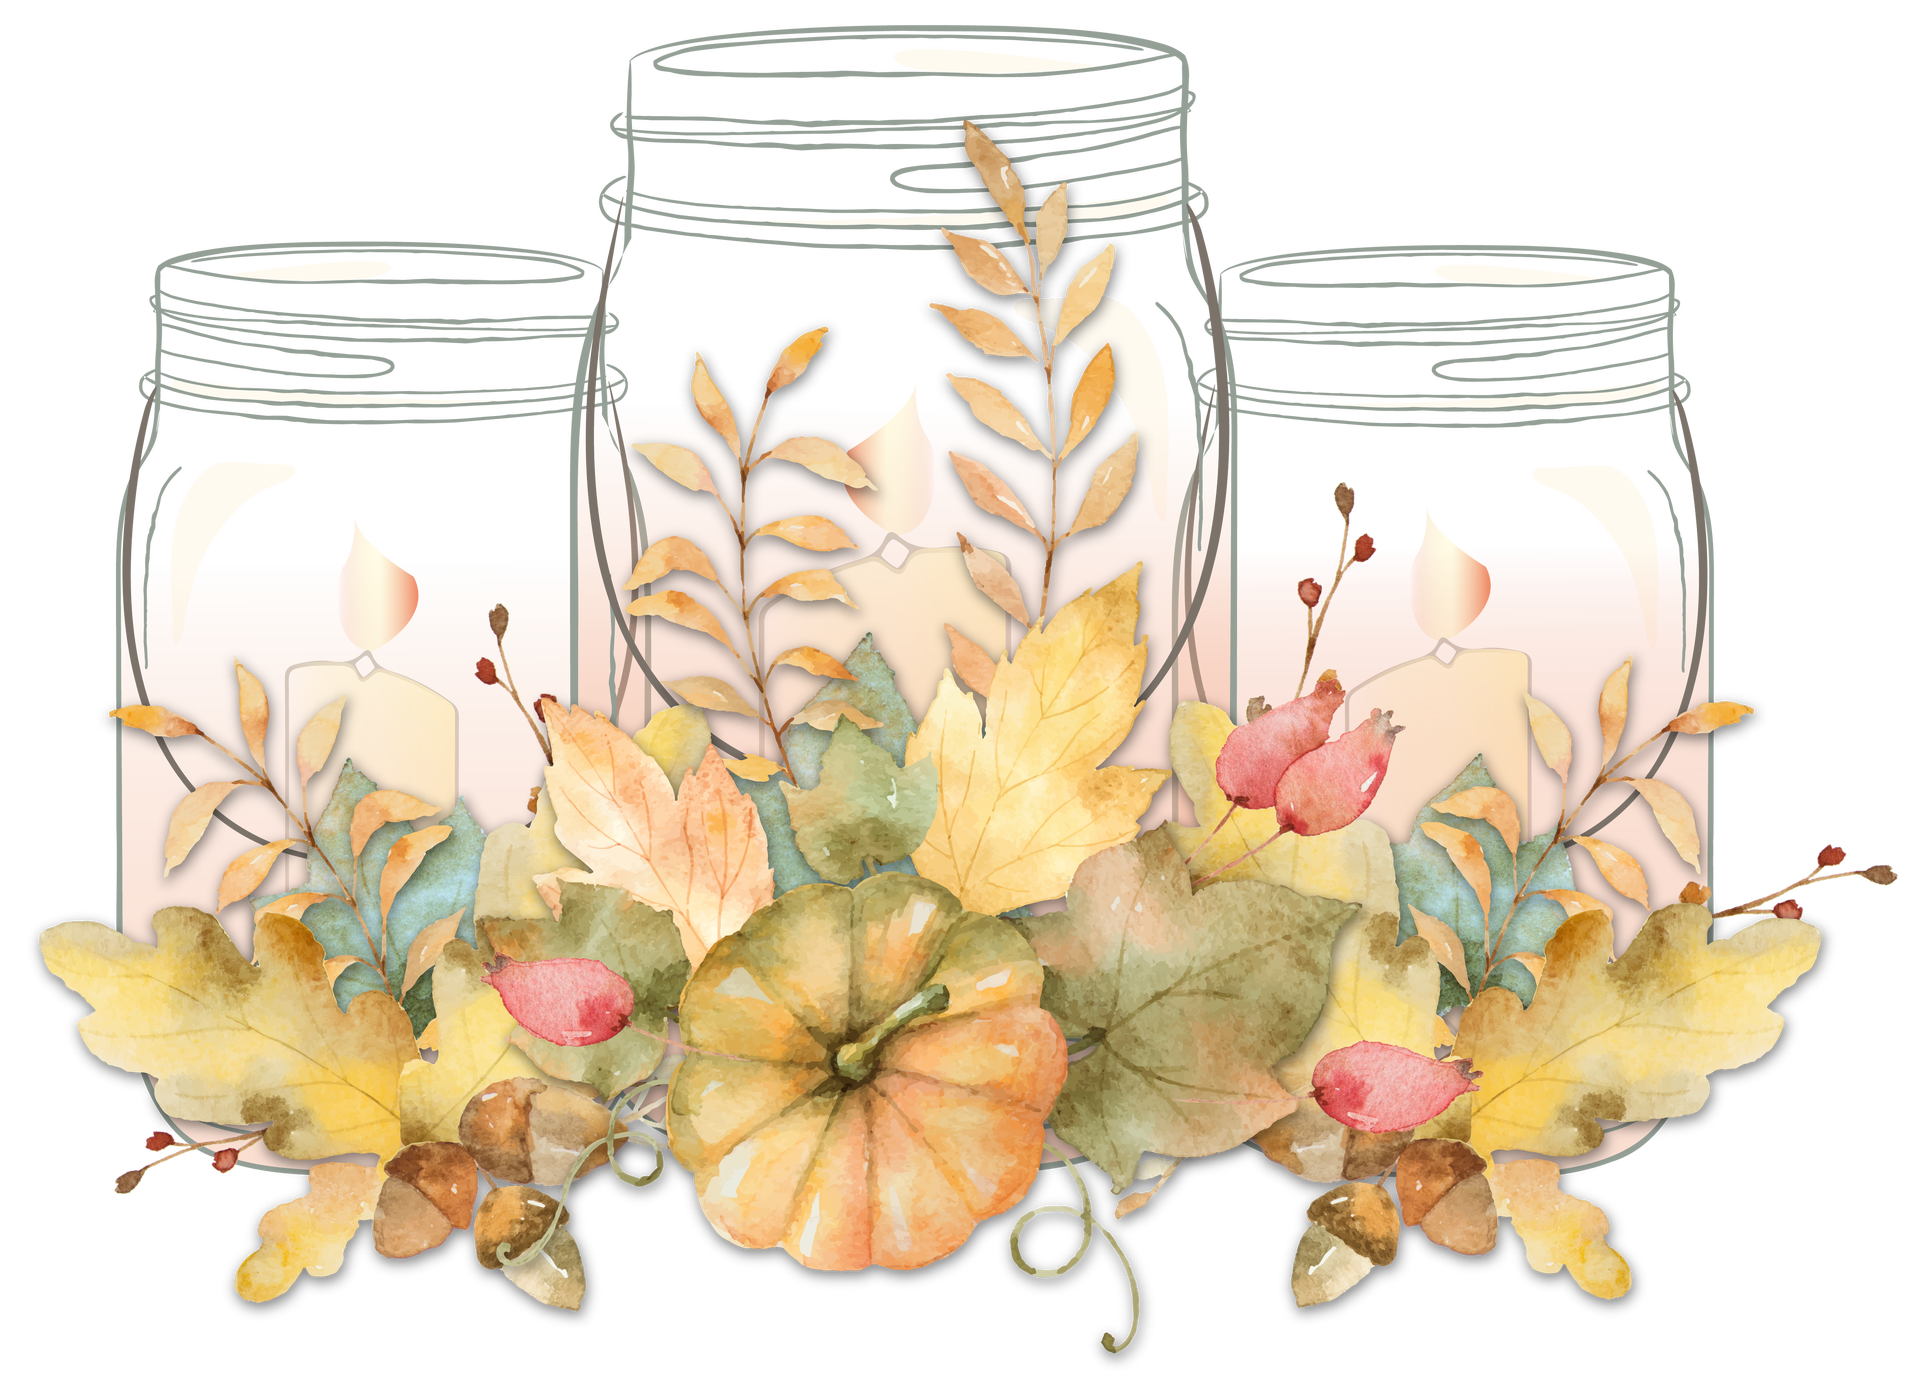 Mason jar with flower clipart graphic royalty free download Logos & Clipart – thehubpwoc.net graphic royalty free download